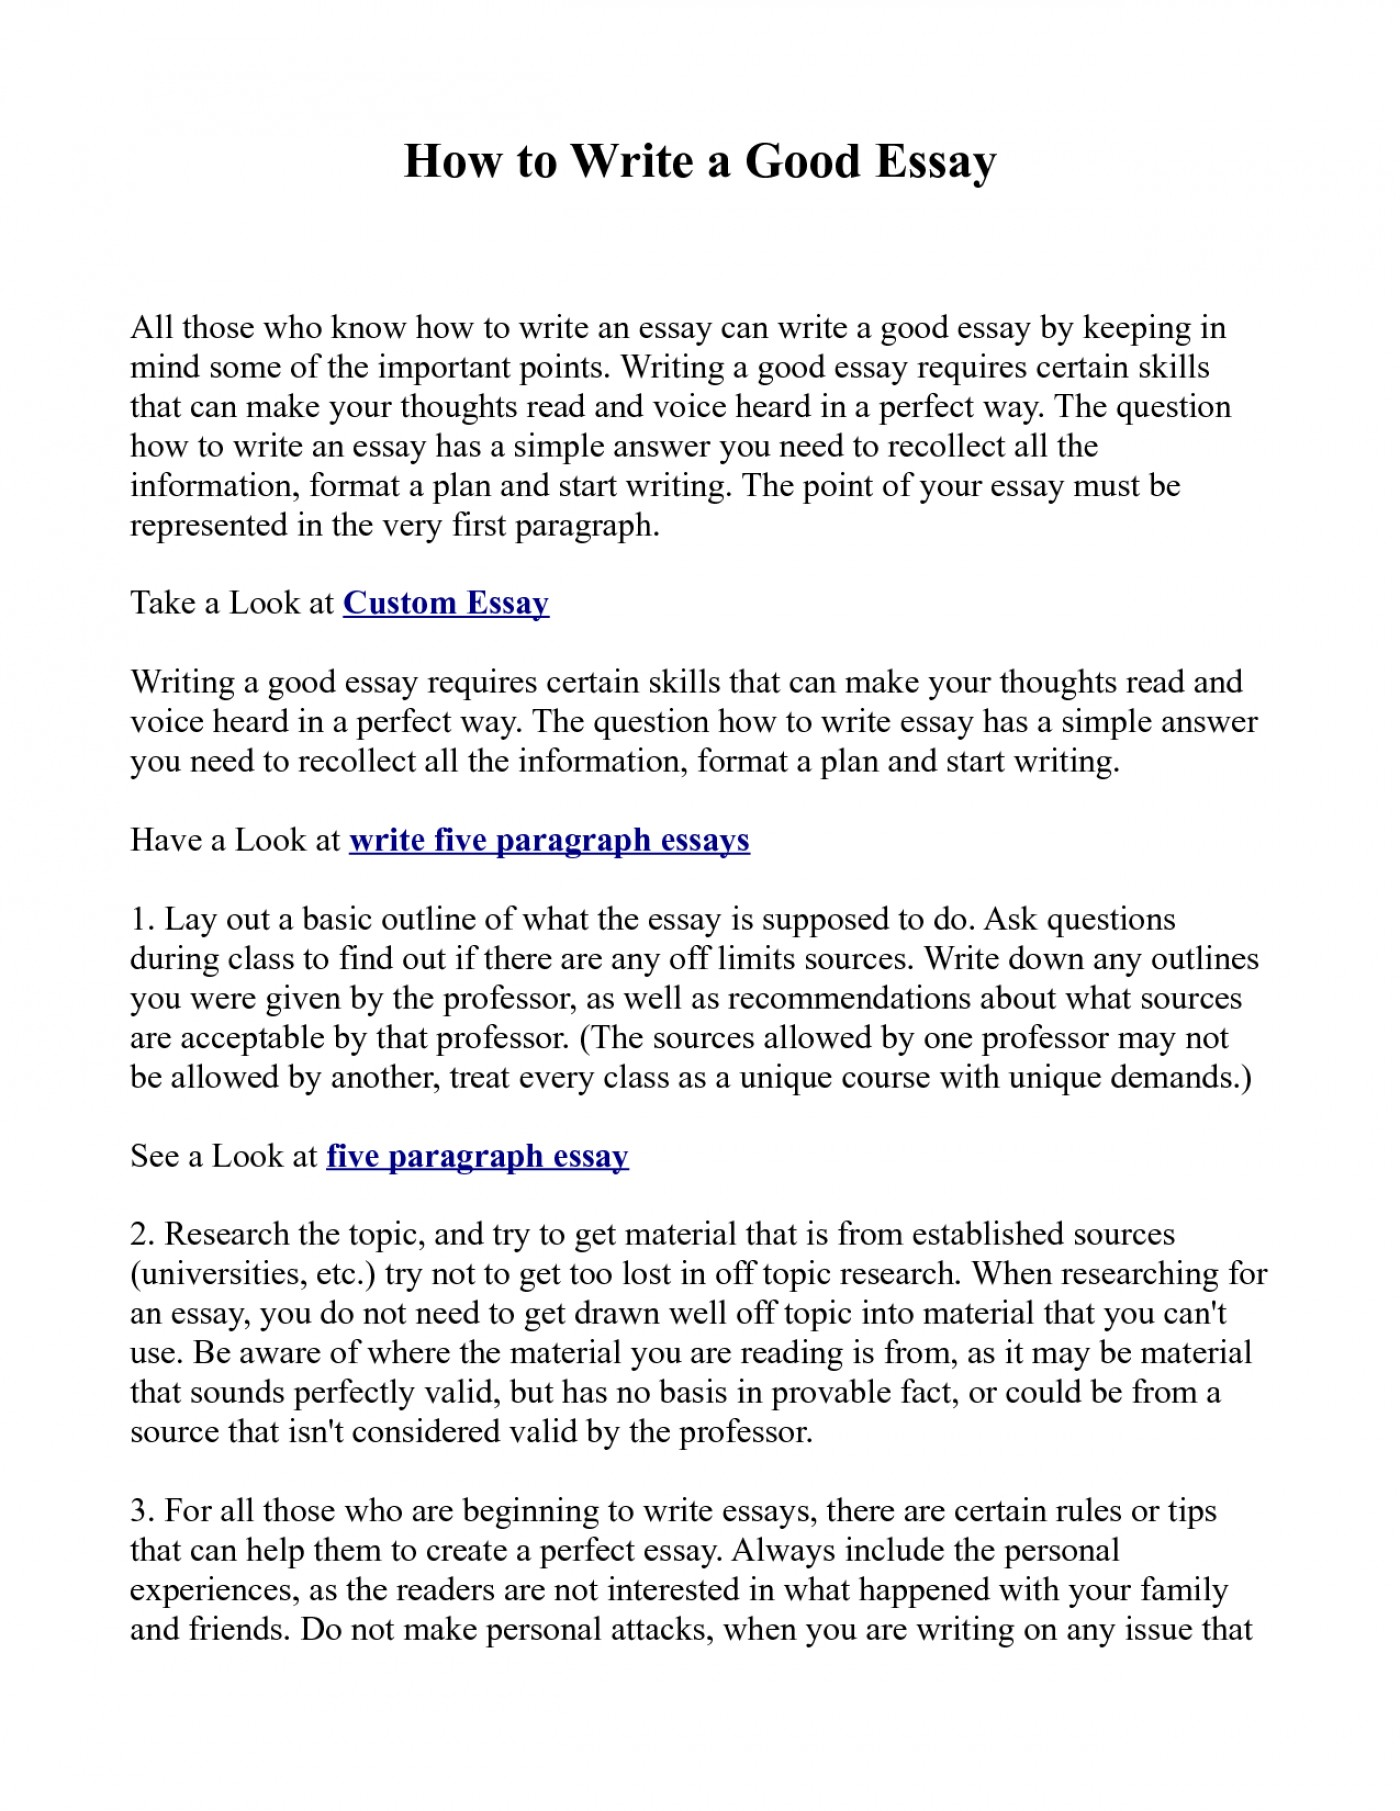 008 Best Essay Topics Ex1id5s6cl Surprising Research Paper For College Student High School Argumentative 1400